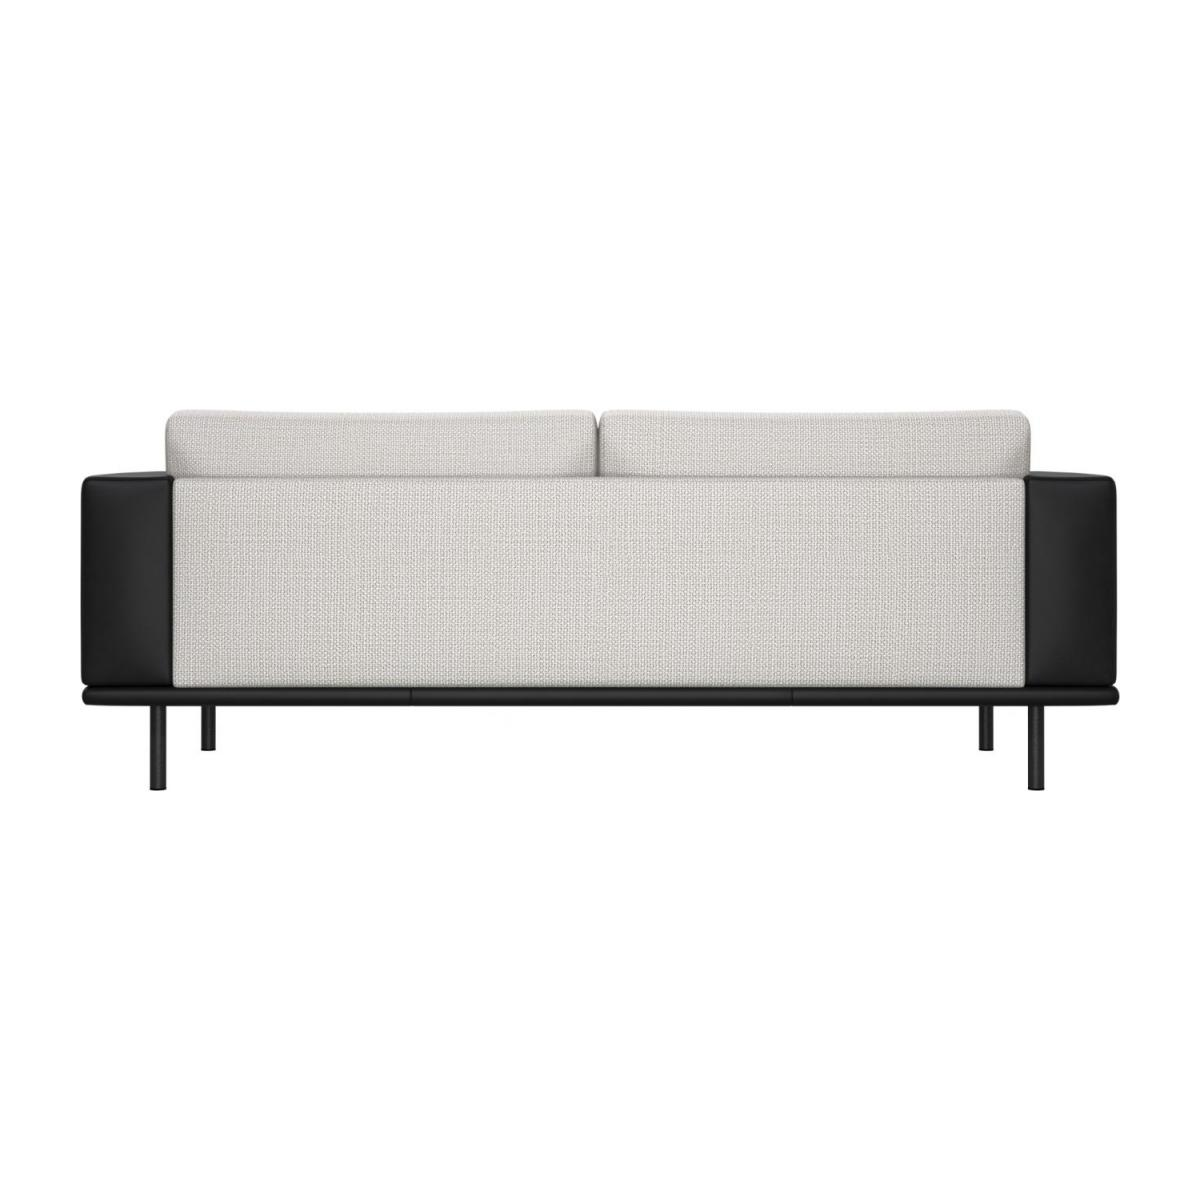 3 seater sofa in Fasoli fabric, snow white with base and armrests in black leather n°3